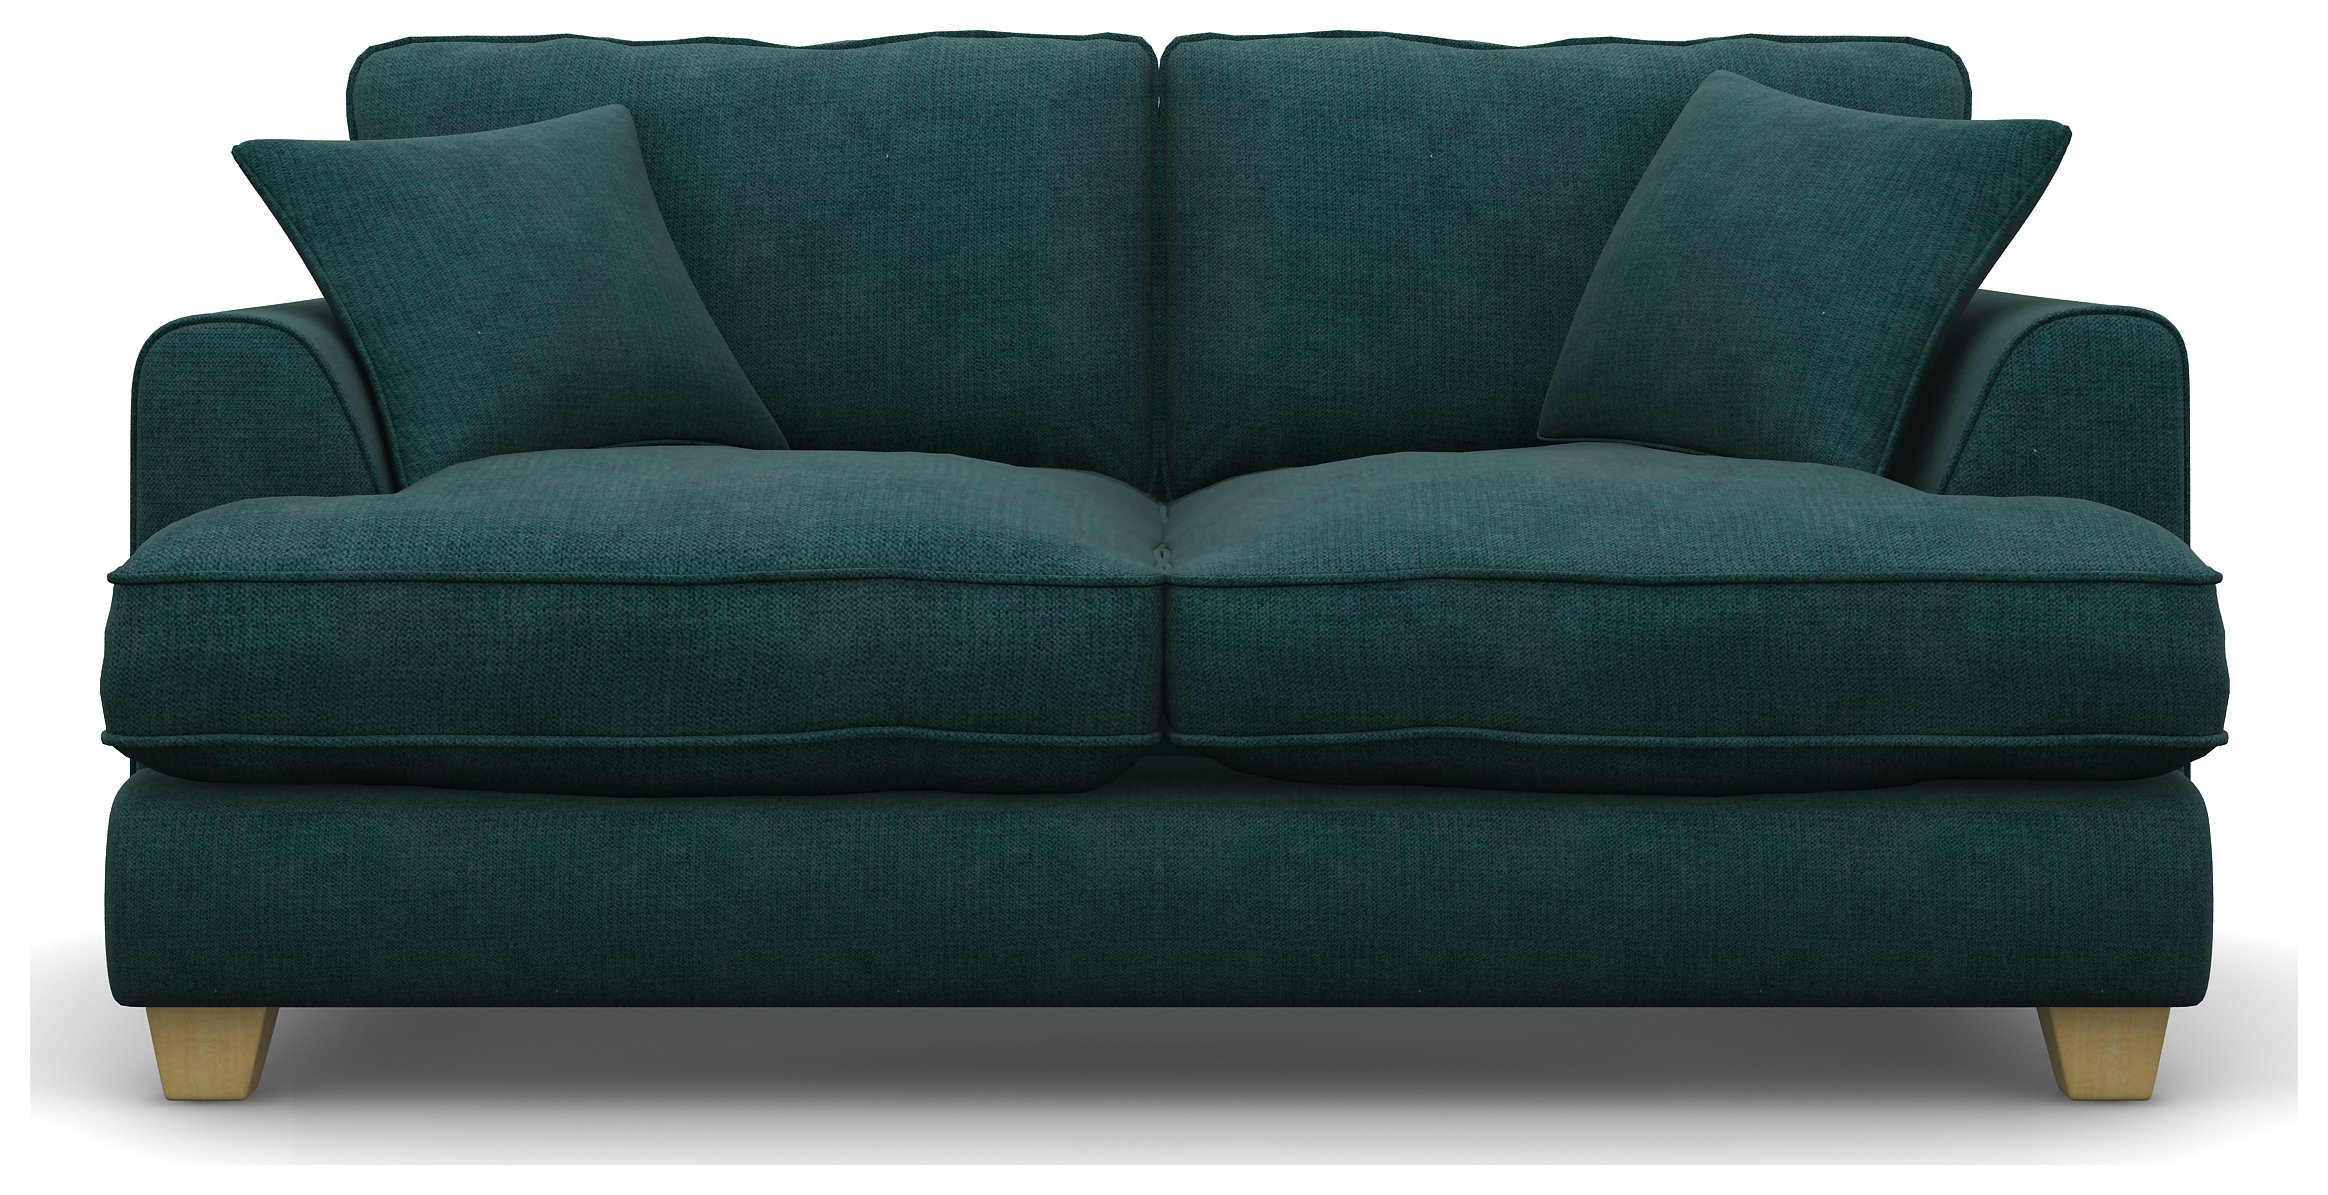 Heart of House Hampstead 2 Seater Fabric Sofa Bed - Natural